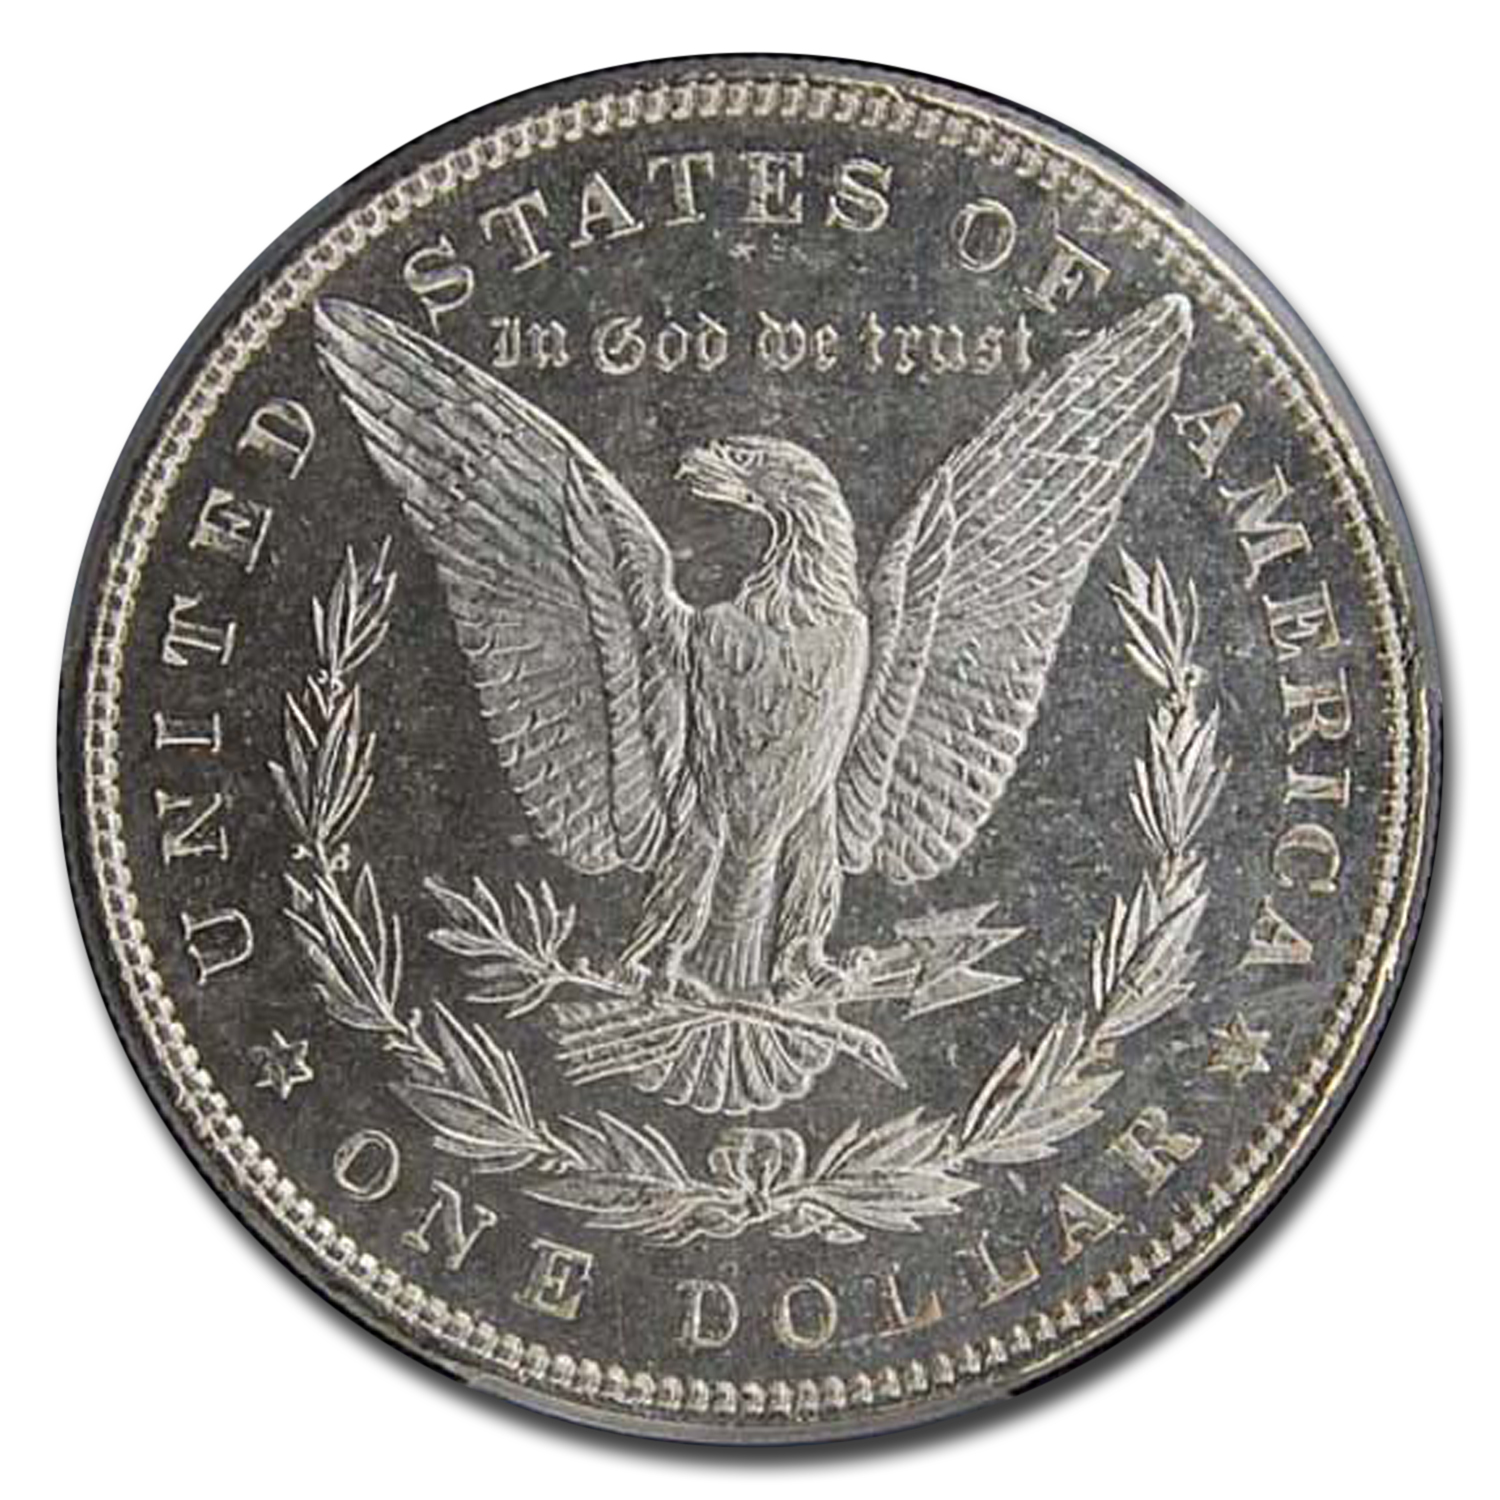 1886 Morgan Dollar - MS-65 DMPL Deep Mirror Proof Like PCGS